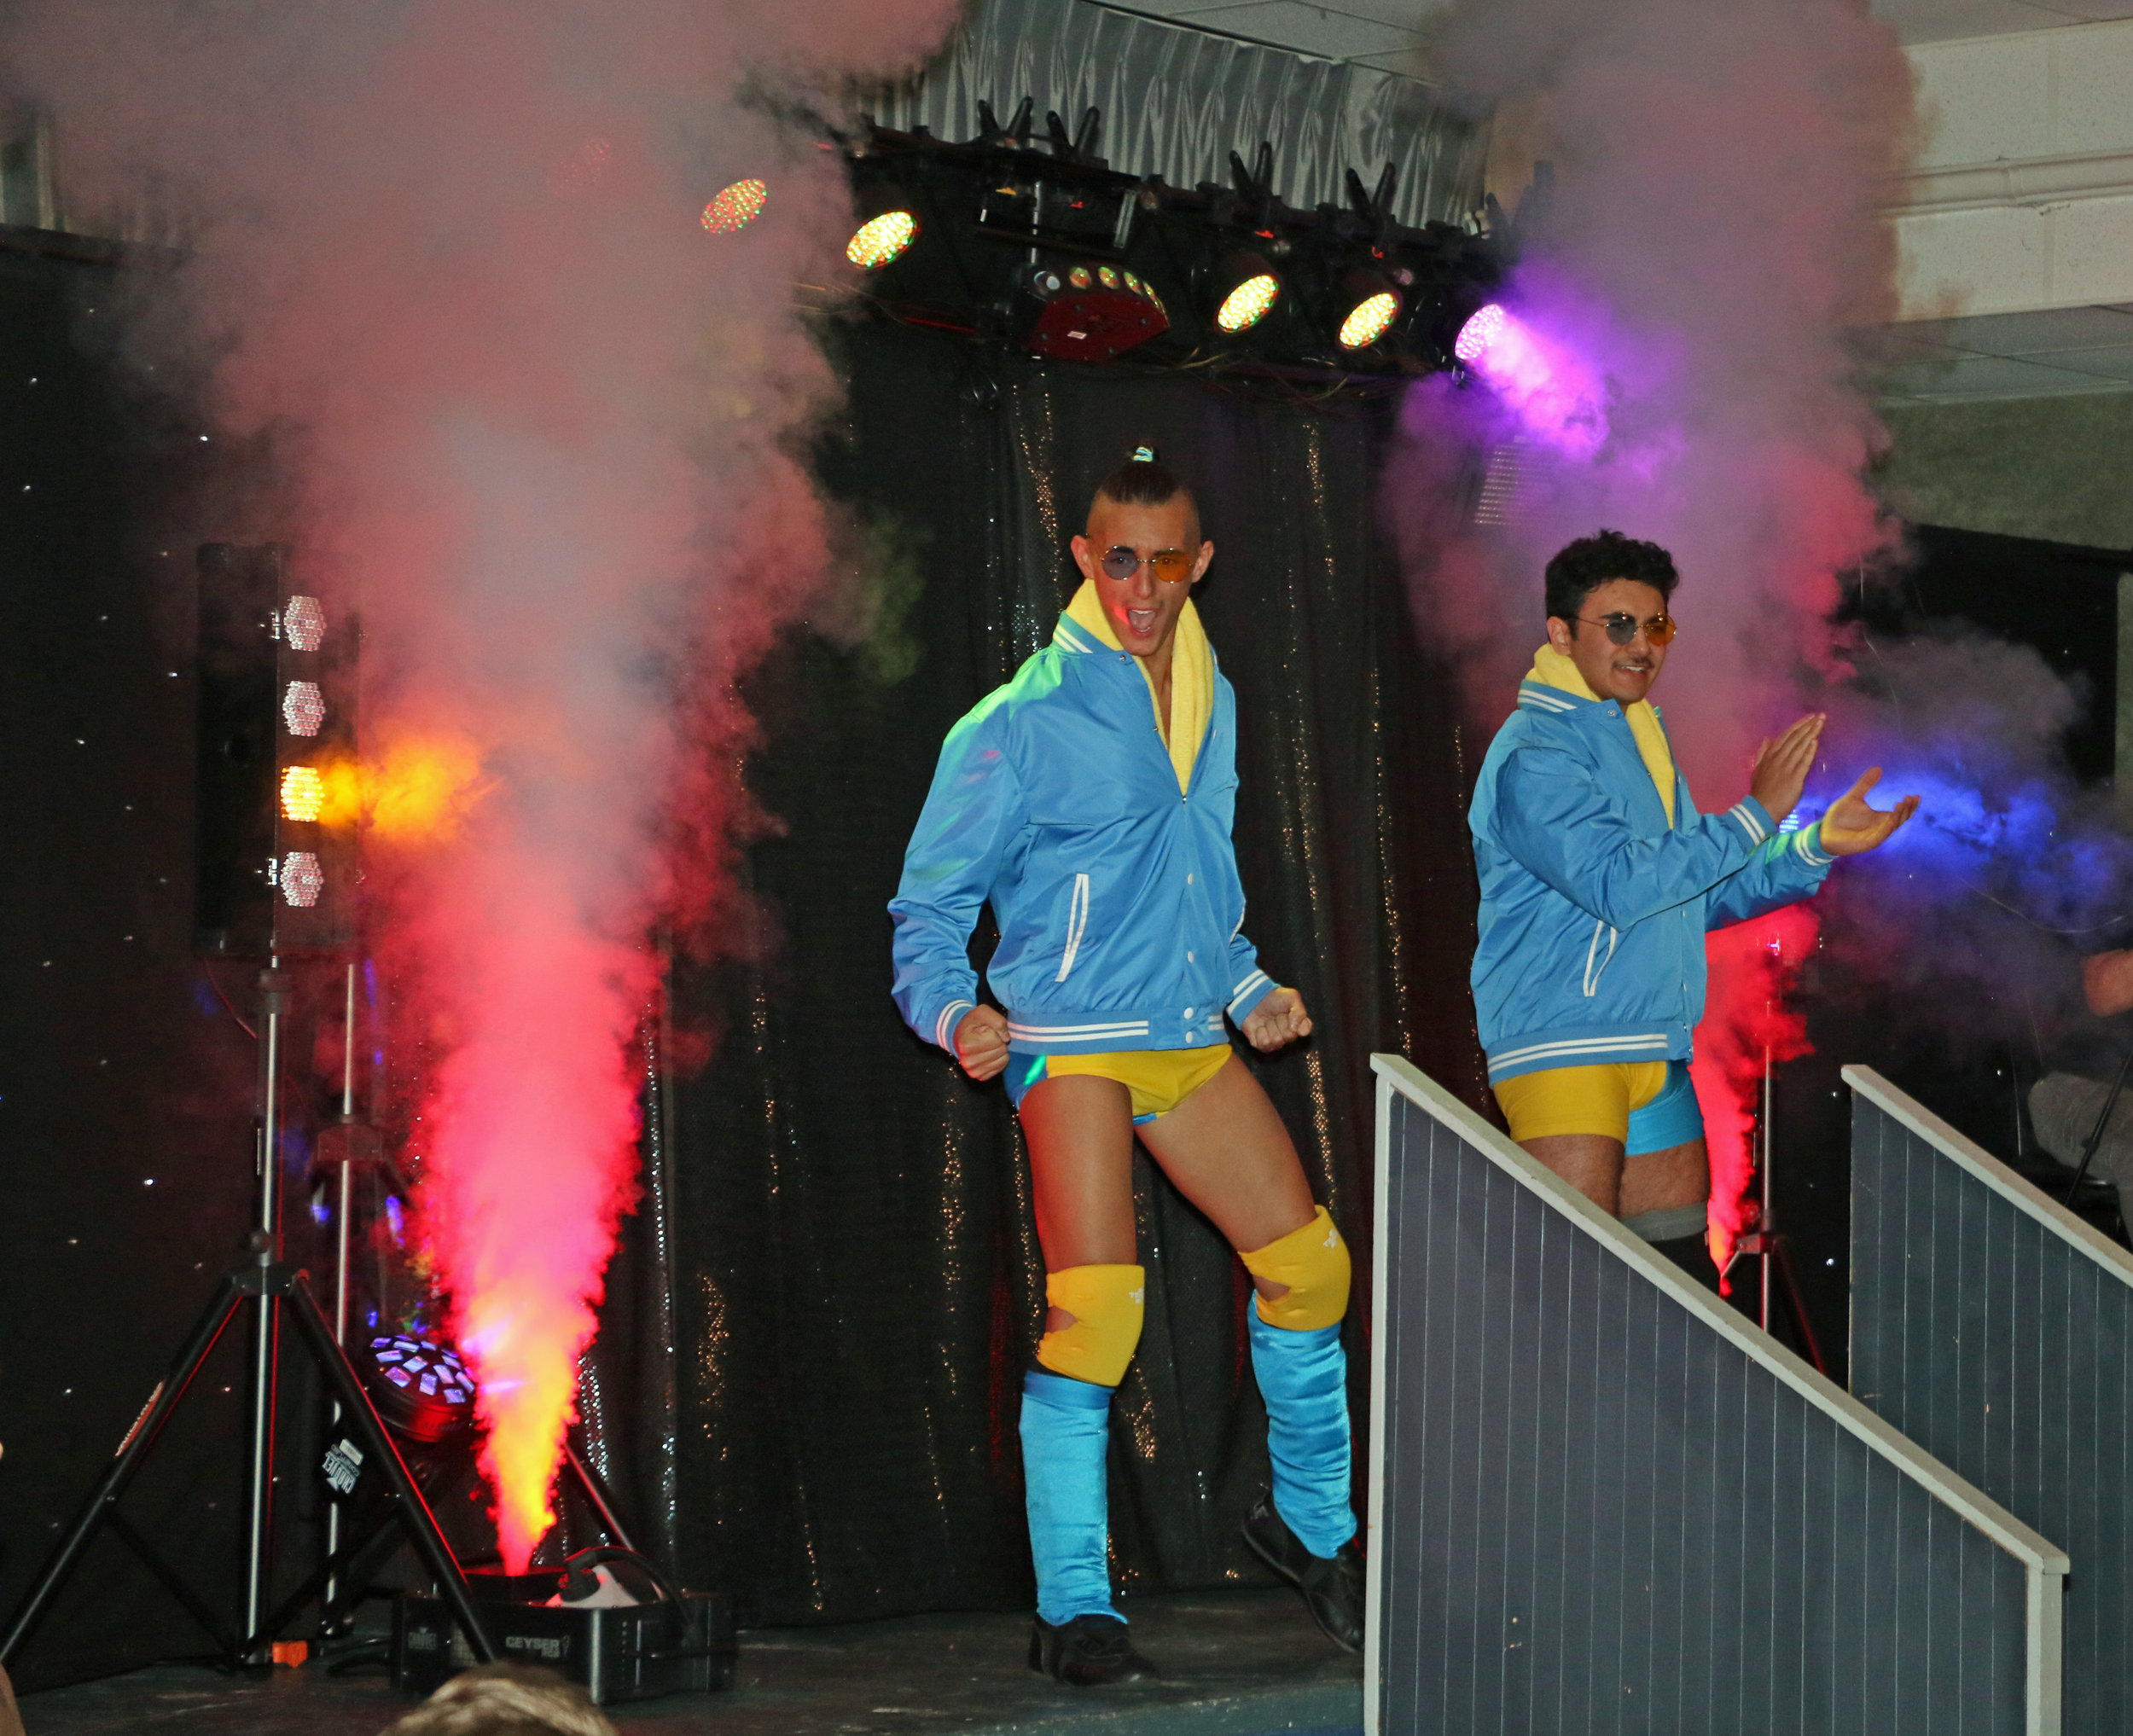 The Princes of the Universe, Jordan Kross, left, and Kal Herro, enter the arena.